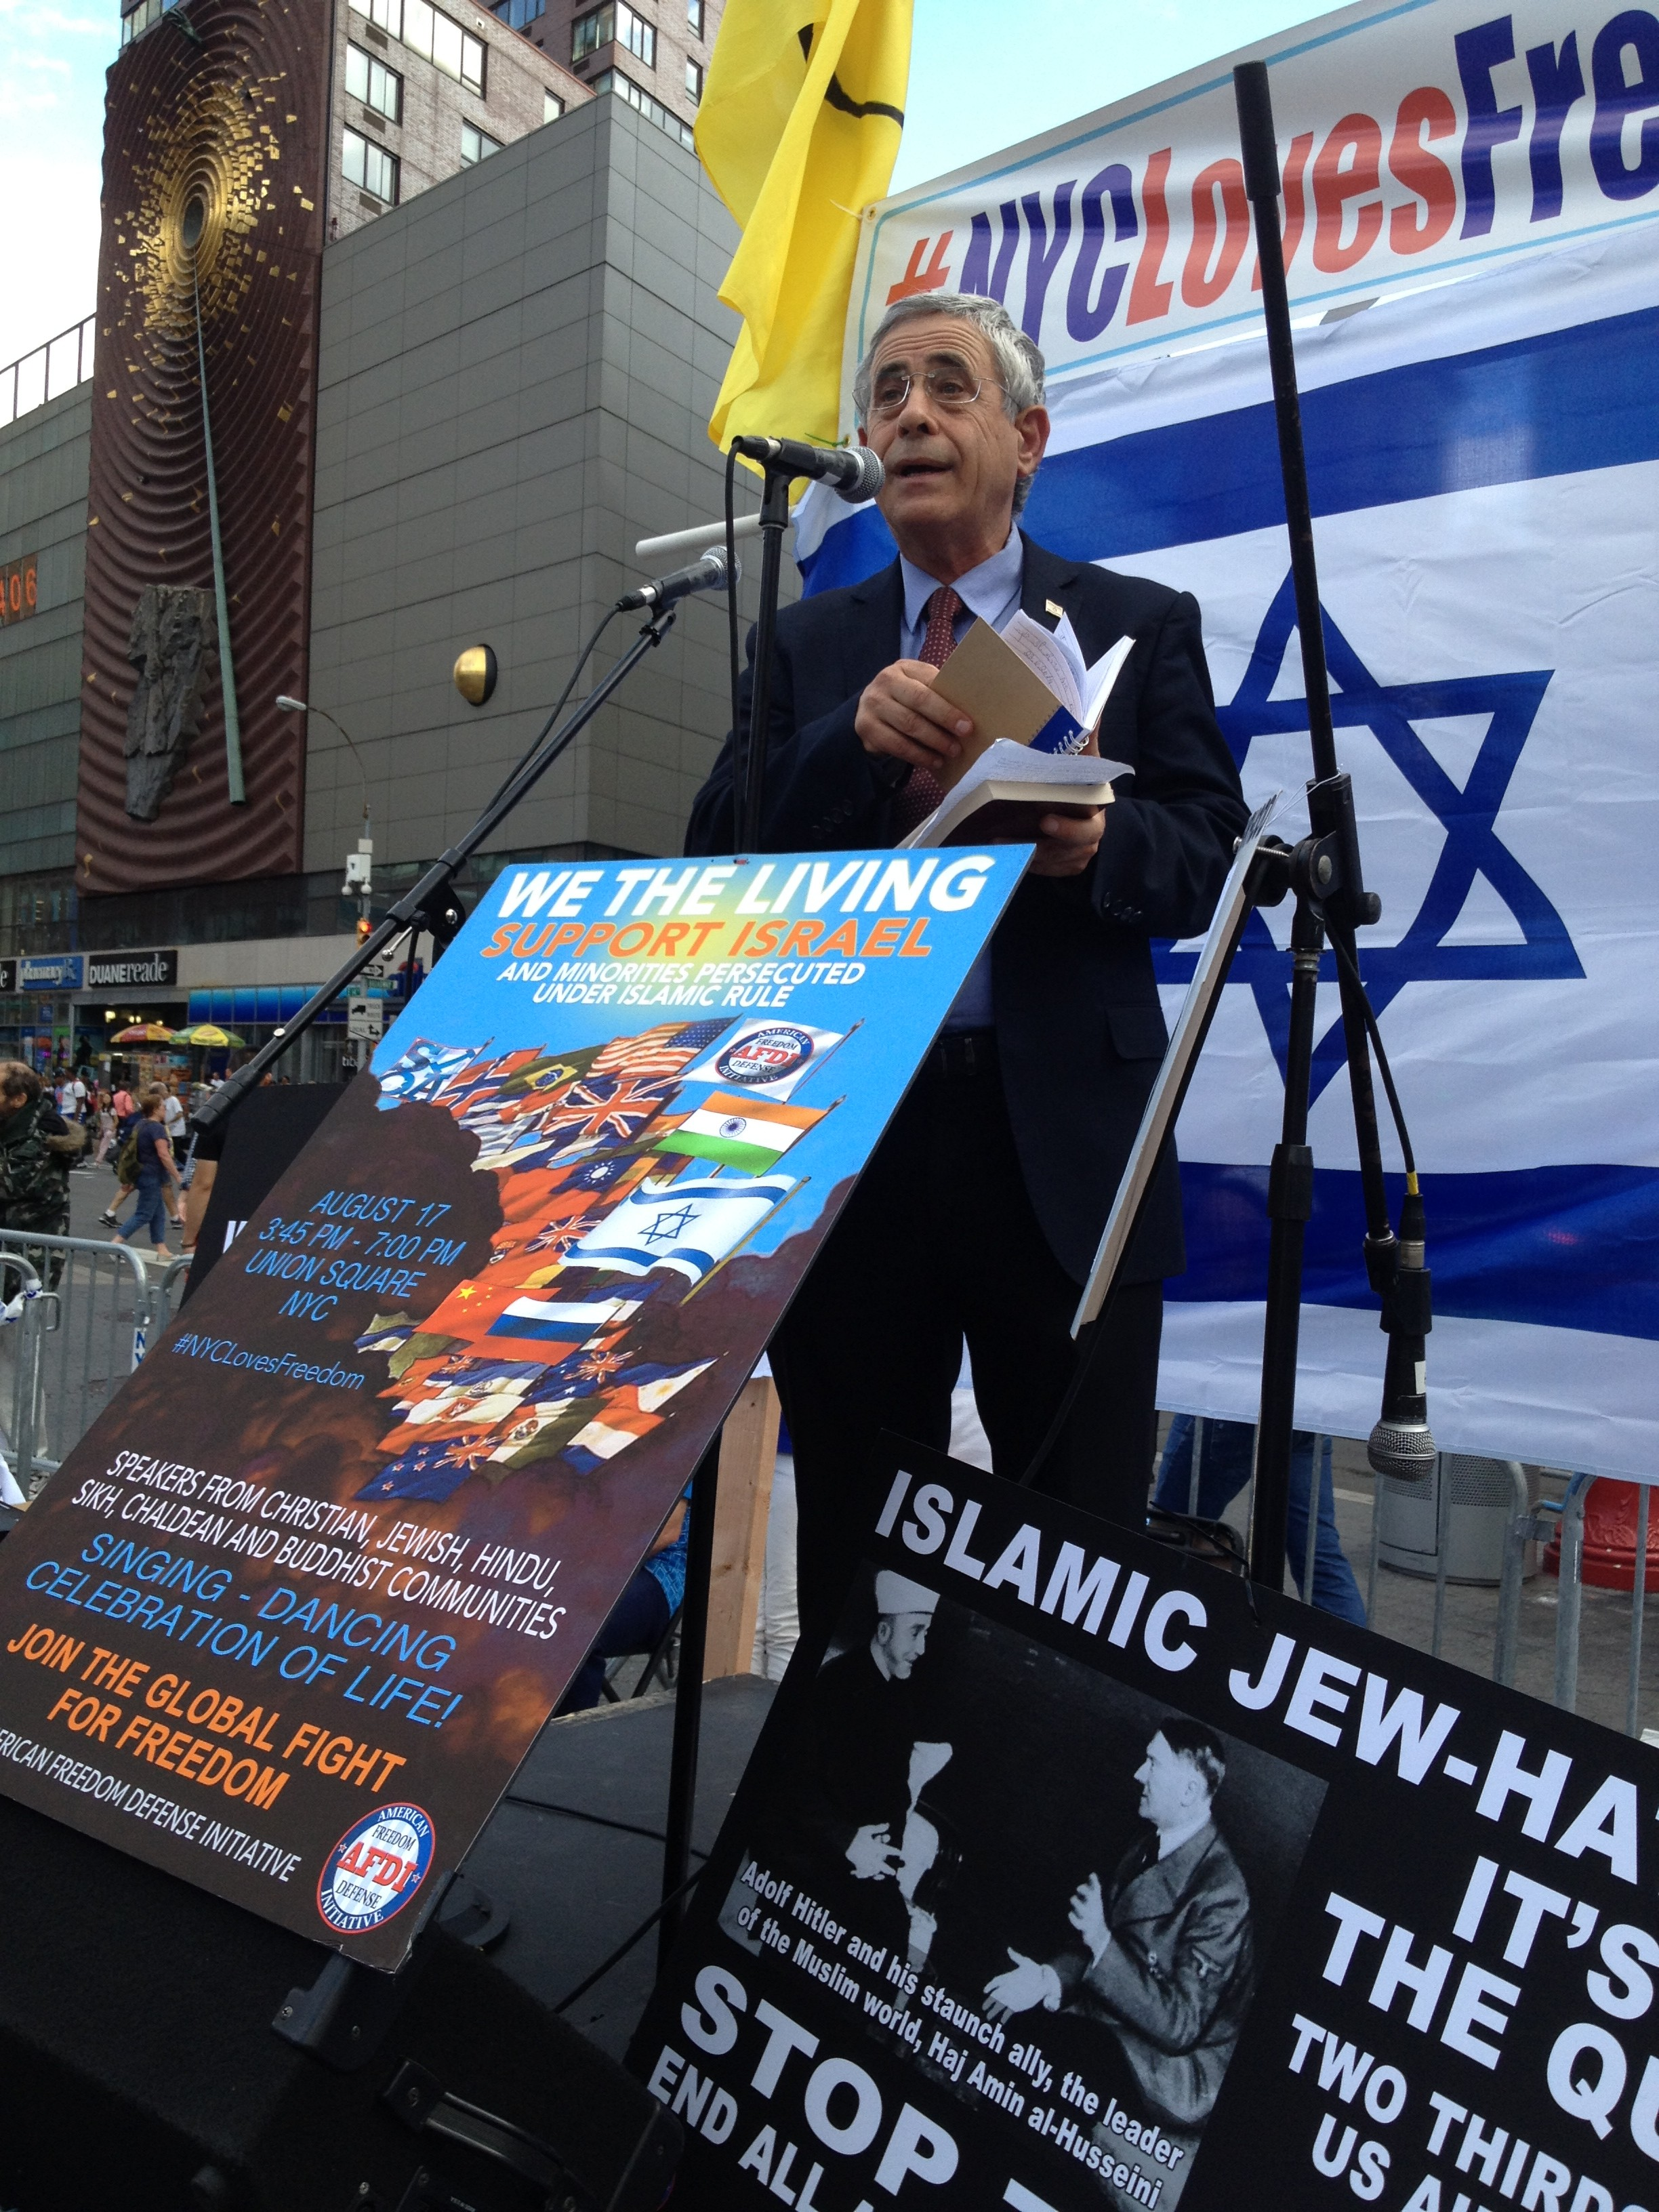 Mordechai Kedar at AFDI rally August 2014